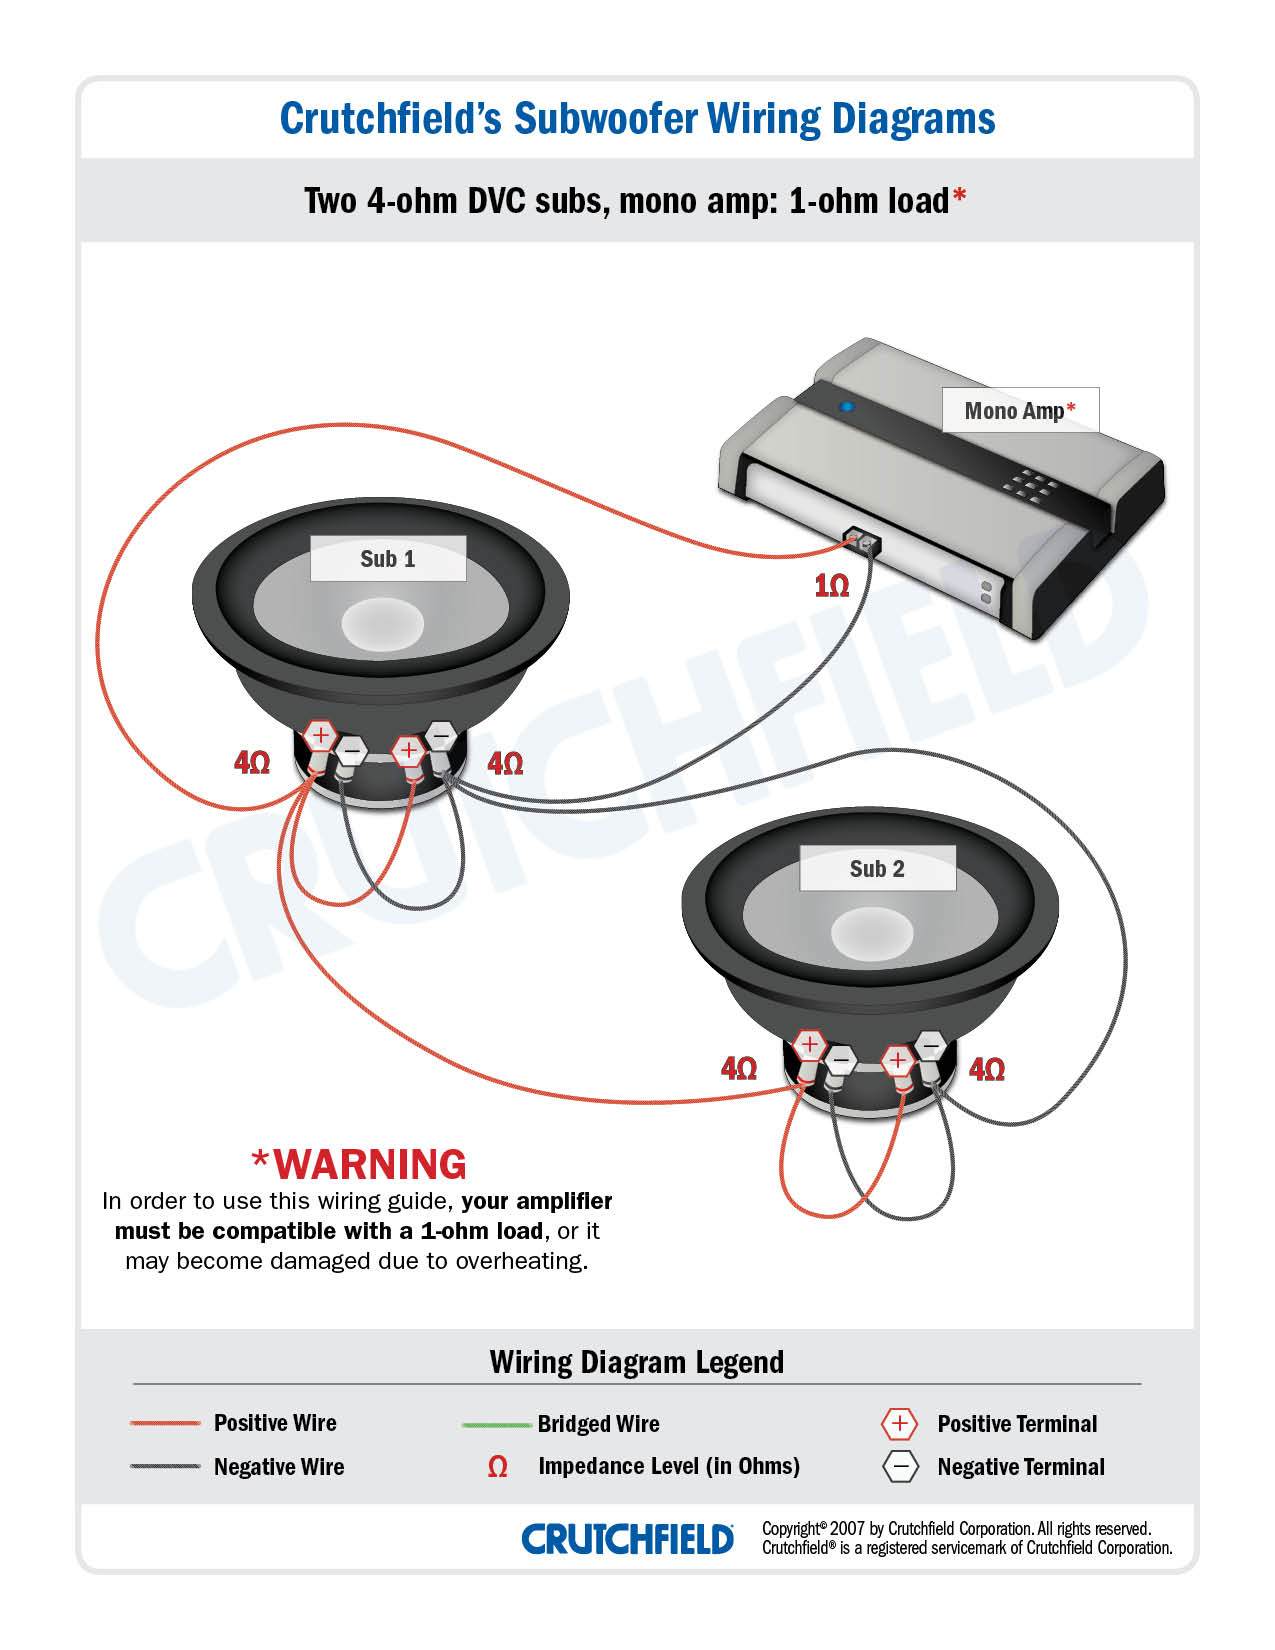 Amplifier Wiring Diagrams: How To Add An Amplifier To Your Car Audio - Bose Car Amplifier Wiring Diagram